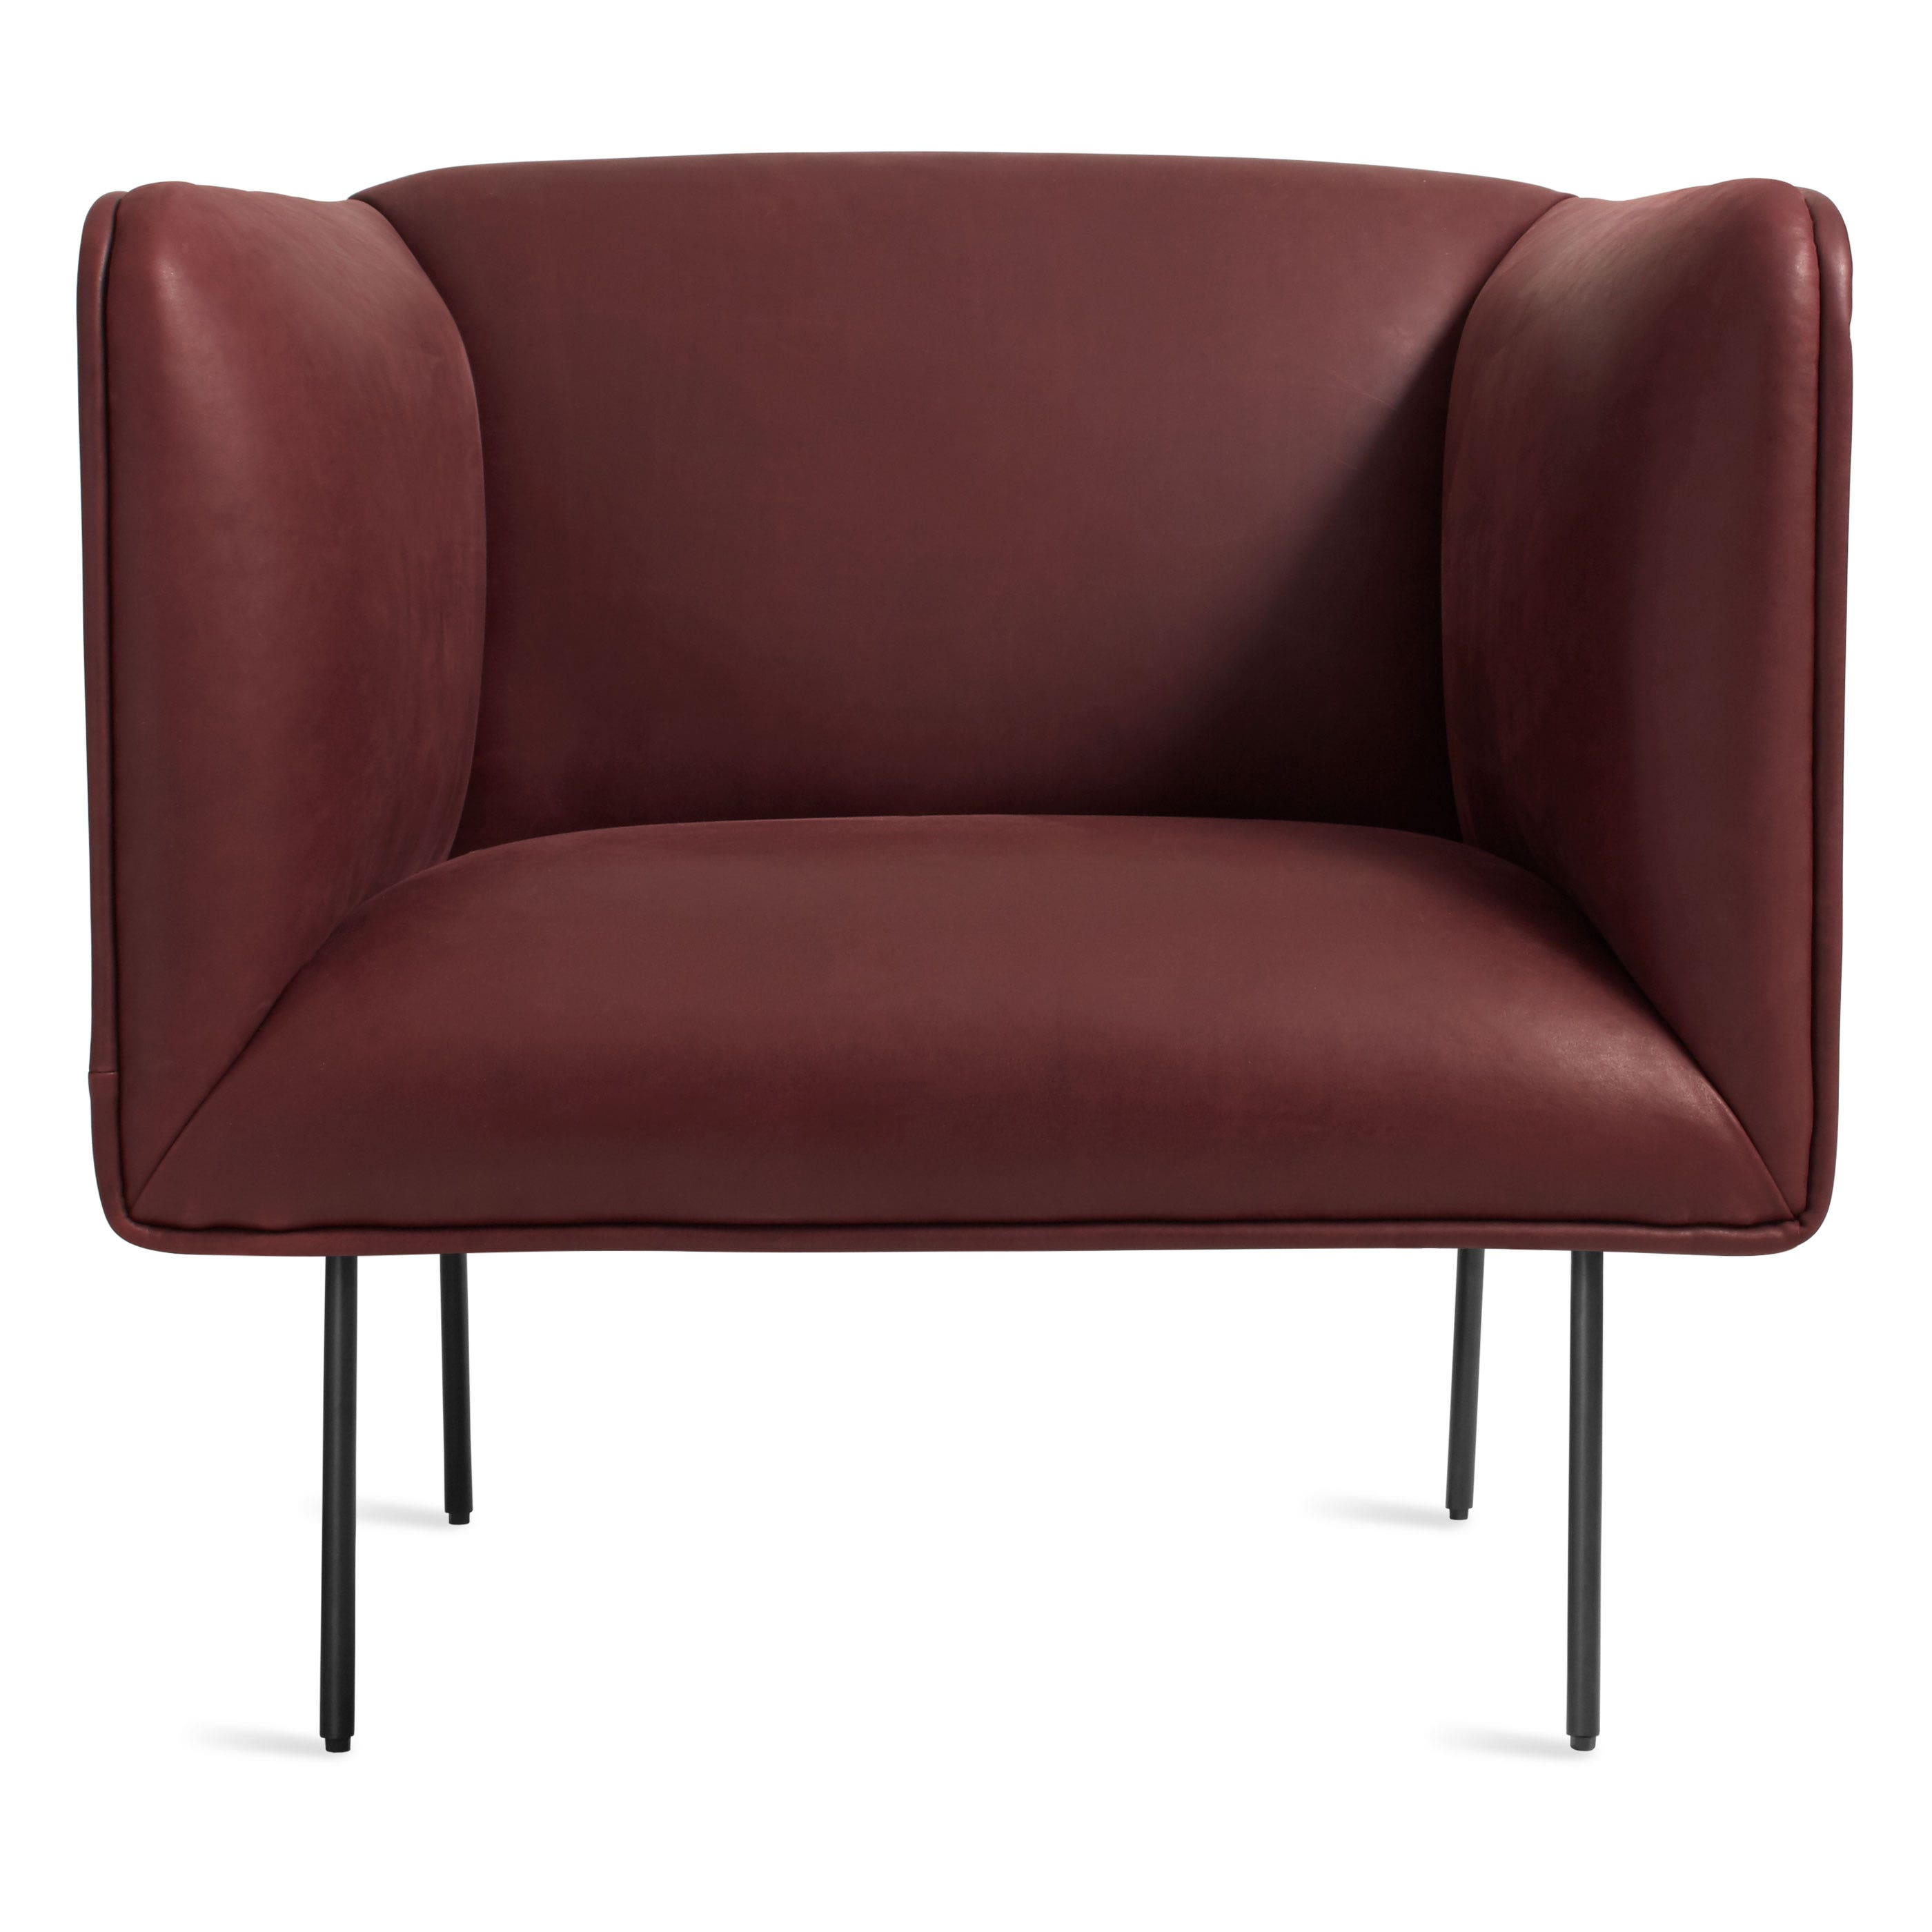 Previous Image Dandy Leather Lounge Chair   Oxblood Leather ...